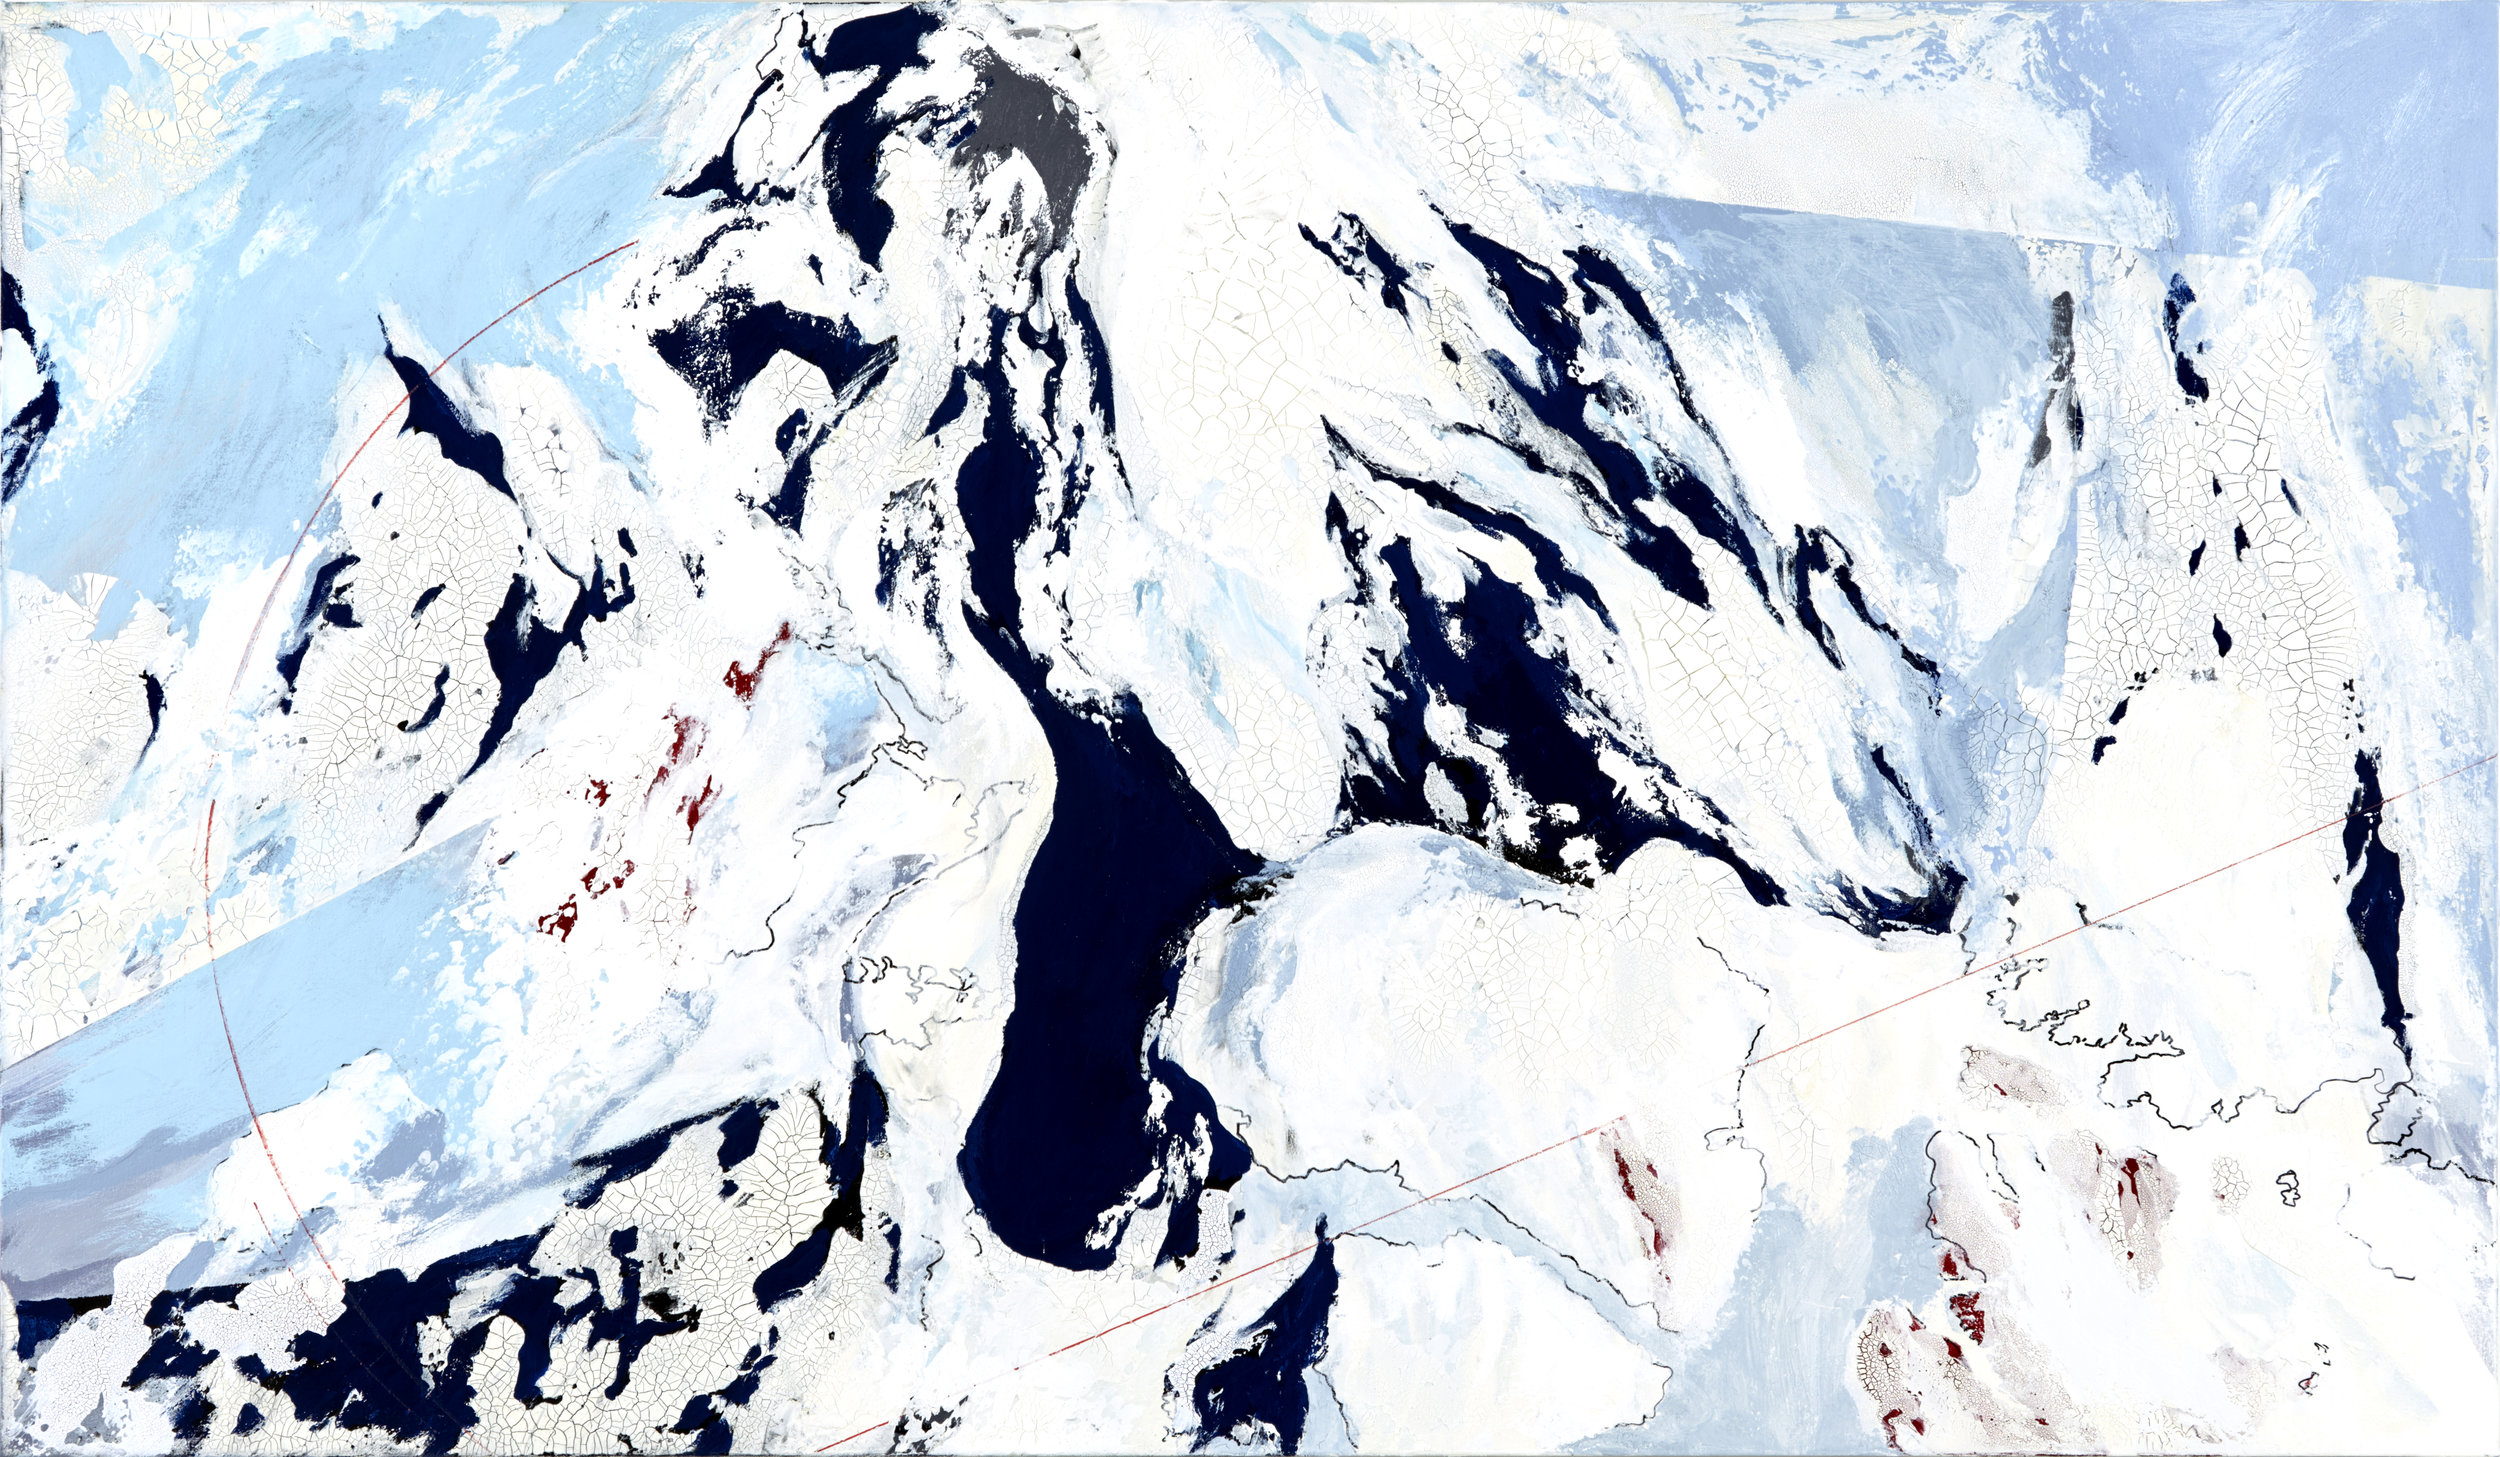 Visions of the Beaufort Sea I